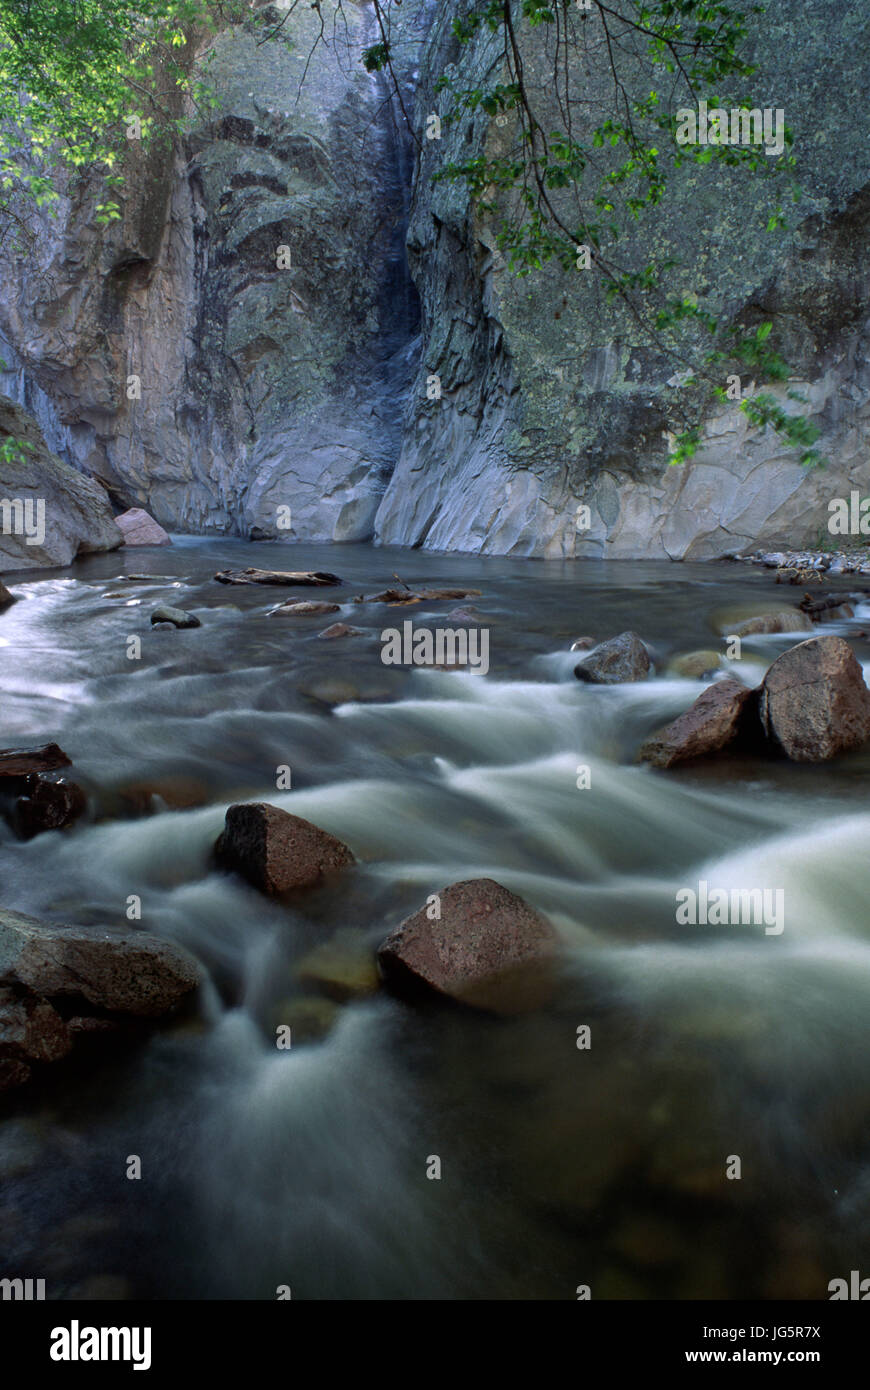 Whitewater Creek, Gila National Forest, New Mexico - Stock Image